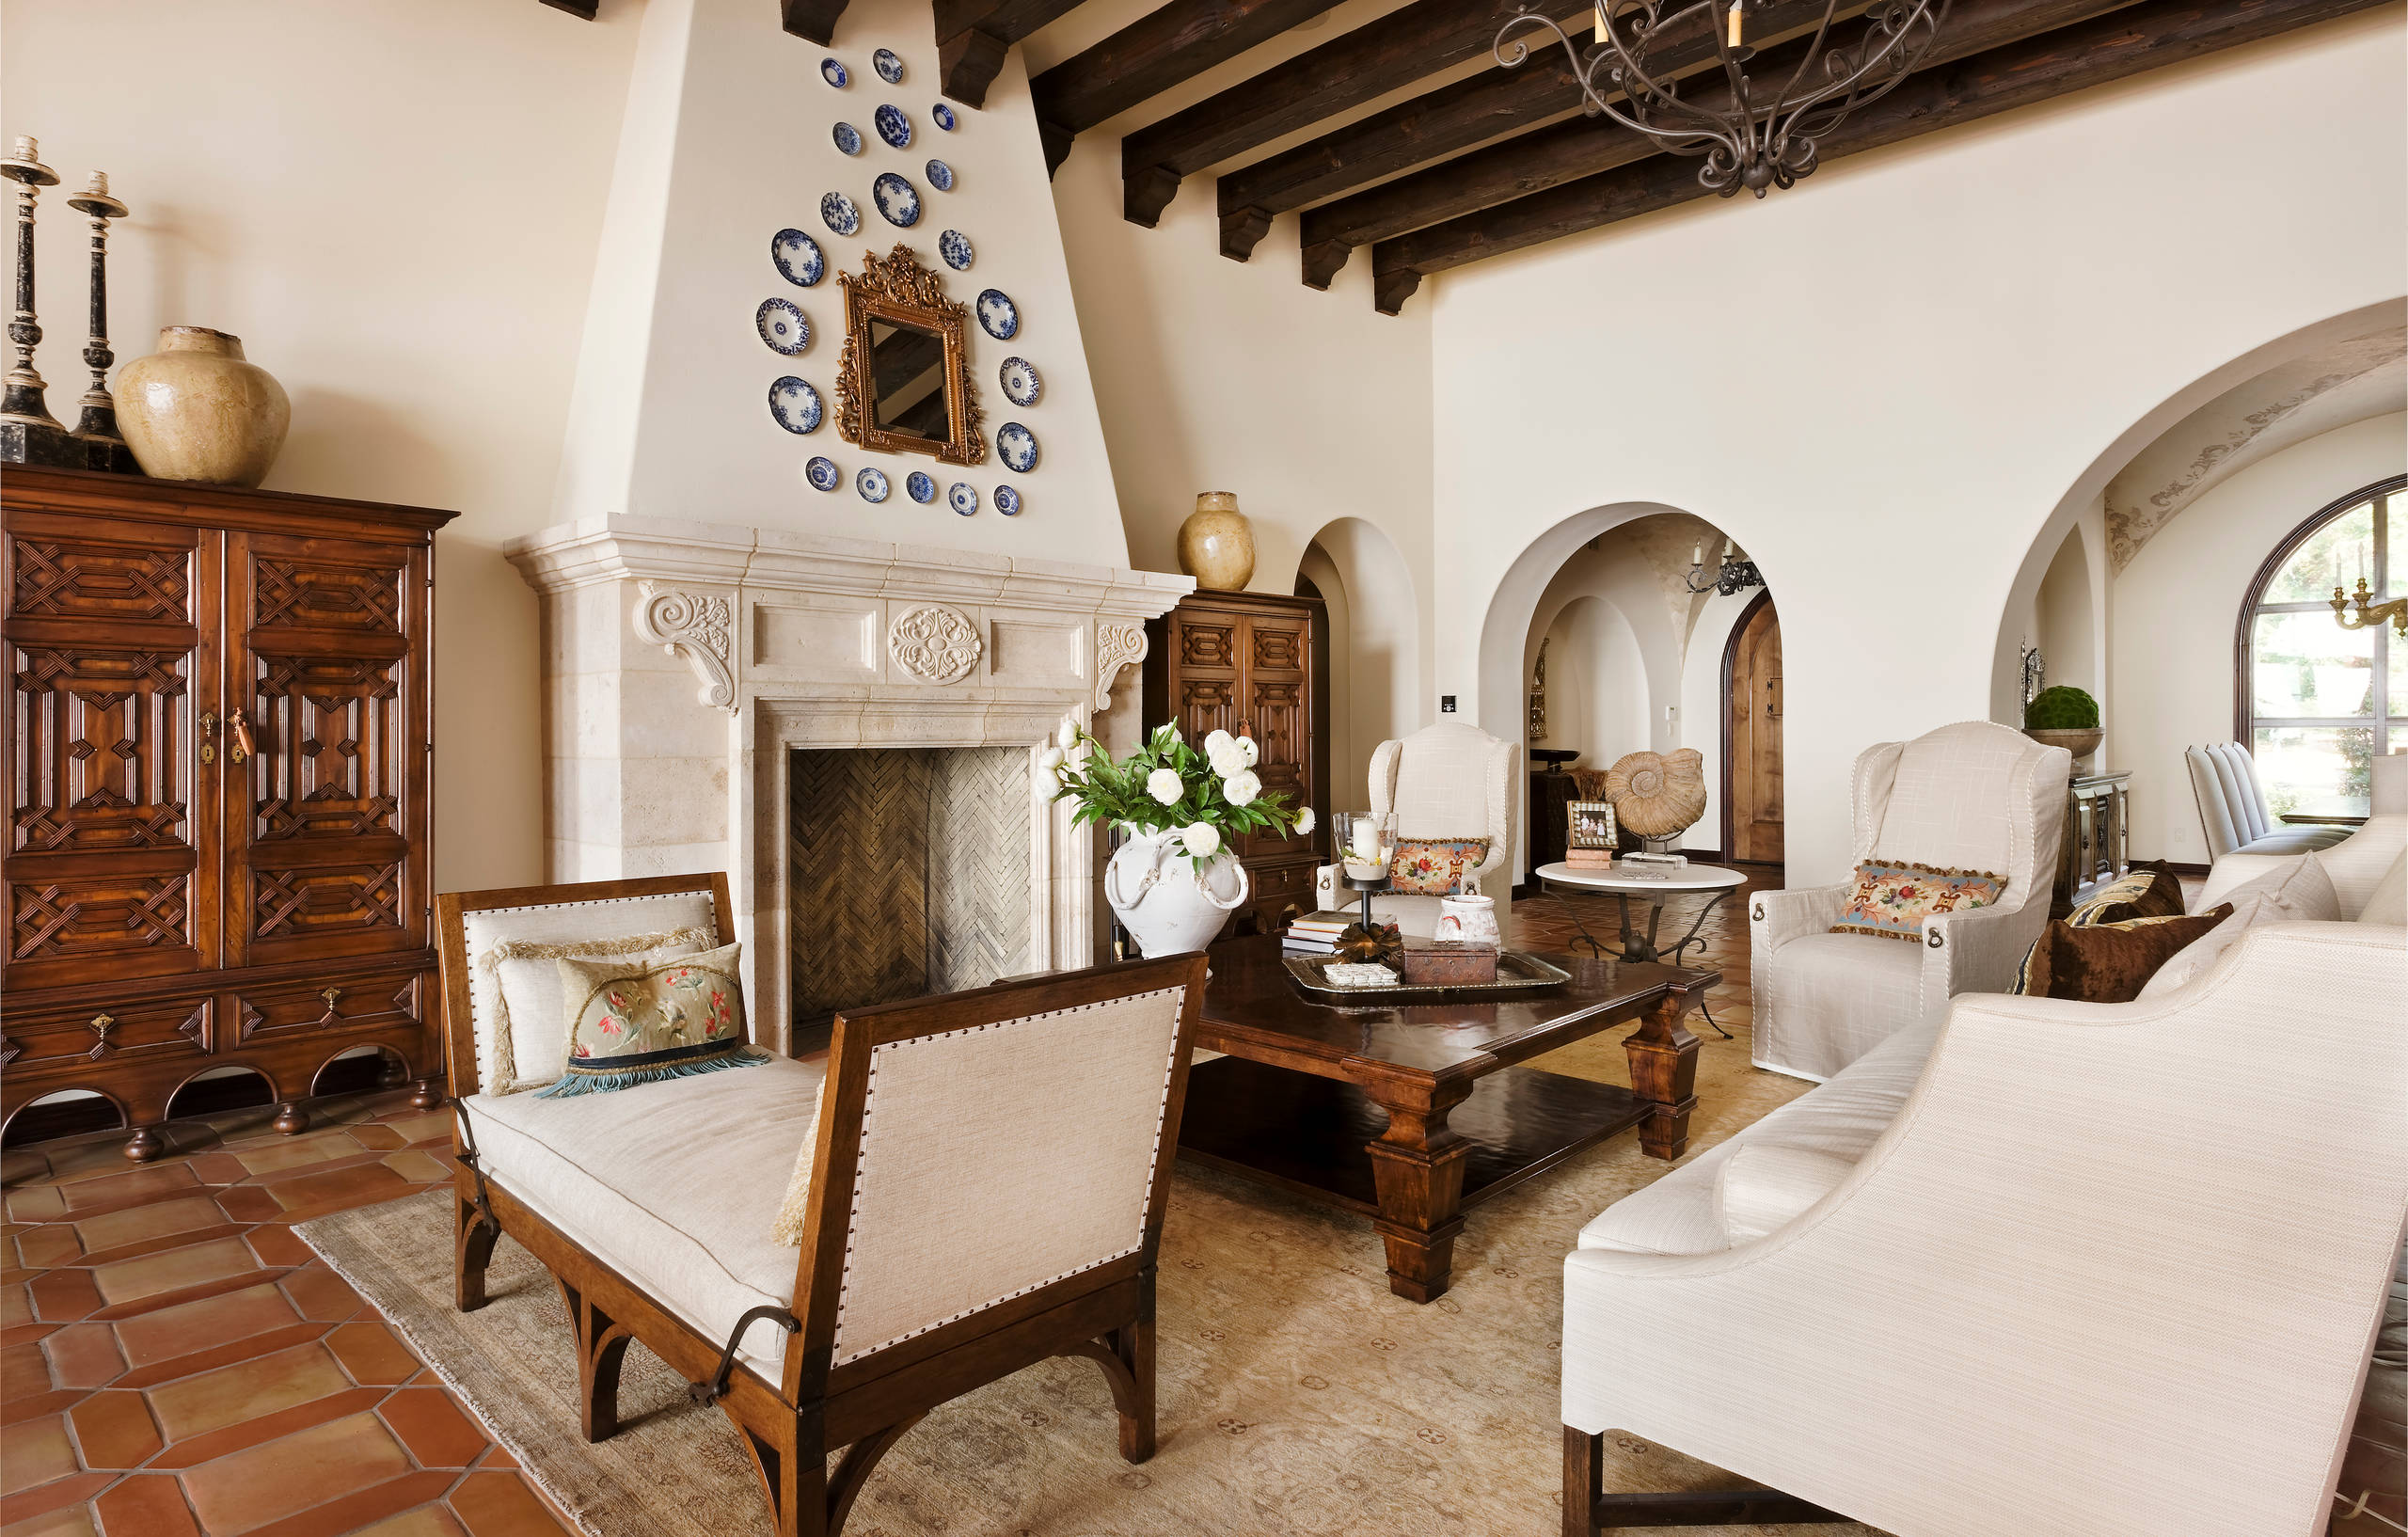 75 Beautiful Terra Cotta Tile Living Room Pictures Ideas February 2021 Houzz